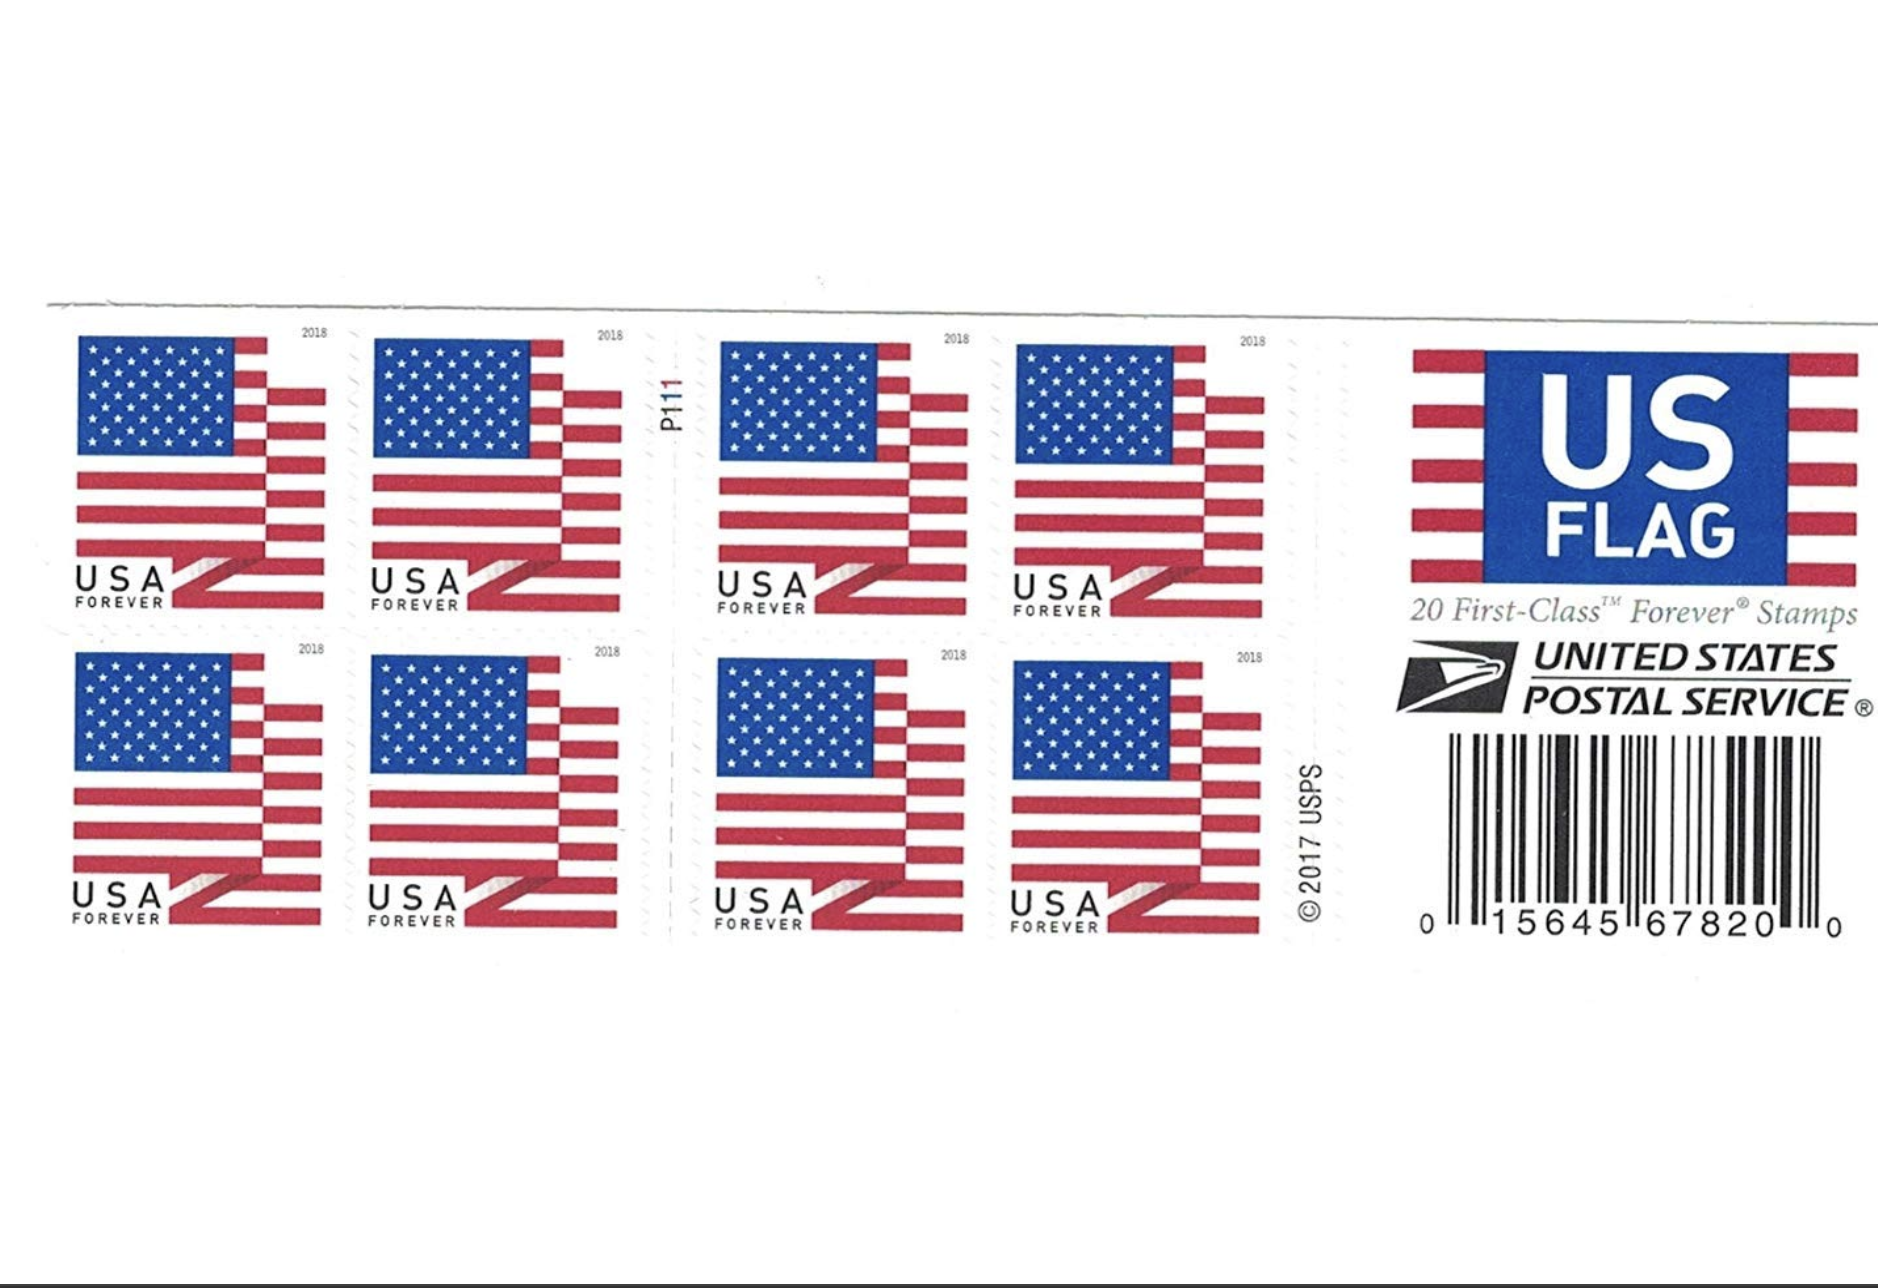 Hurry Usps Forever Stamps For 42 5 Cents Shipped From Amazon Forever Stamps Stamp Deal Sites